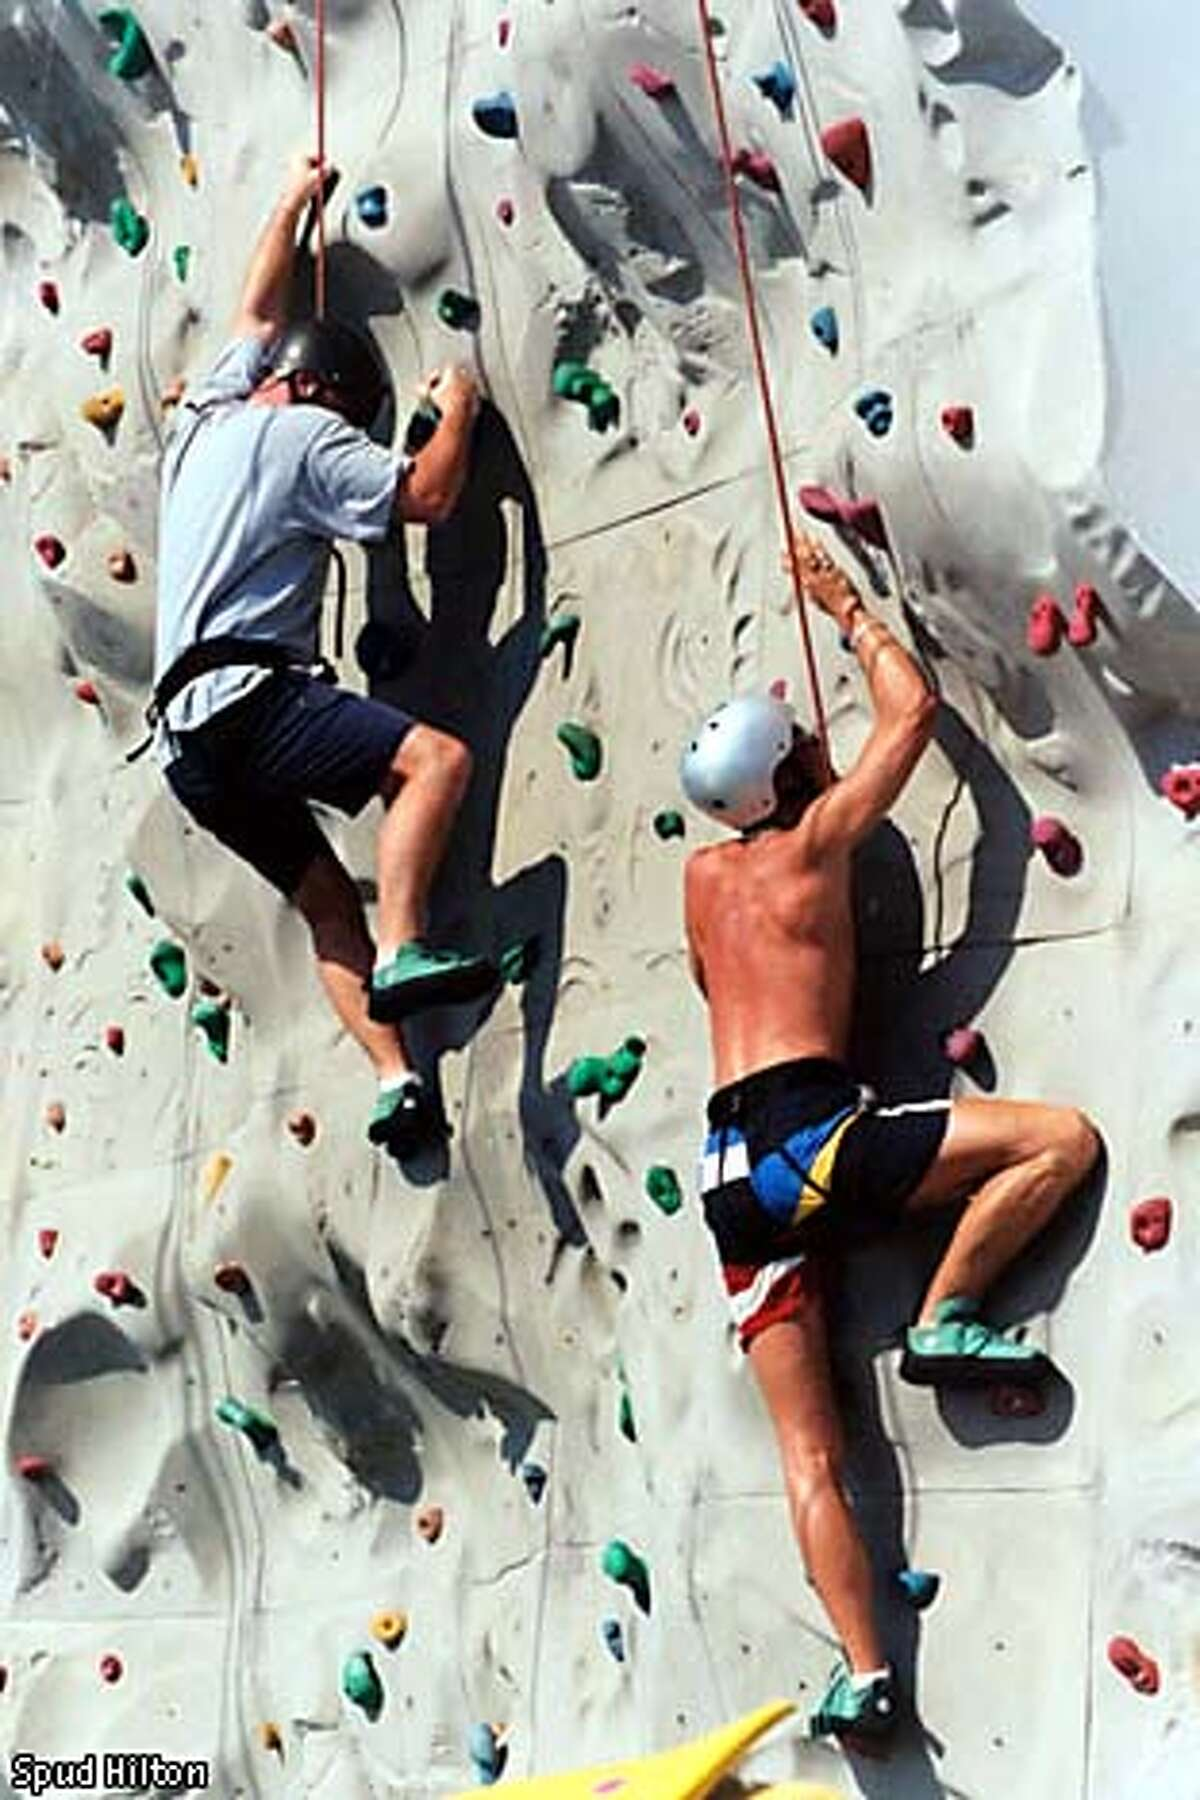 Passengers make use of the ship's climbing wall. Photo by Spud Hilton, special to the Chronicle